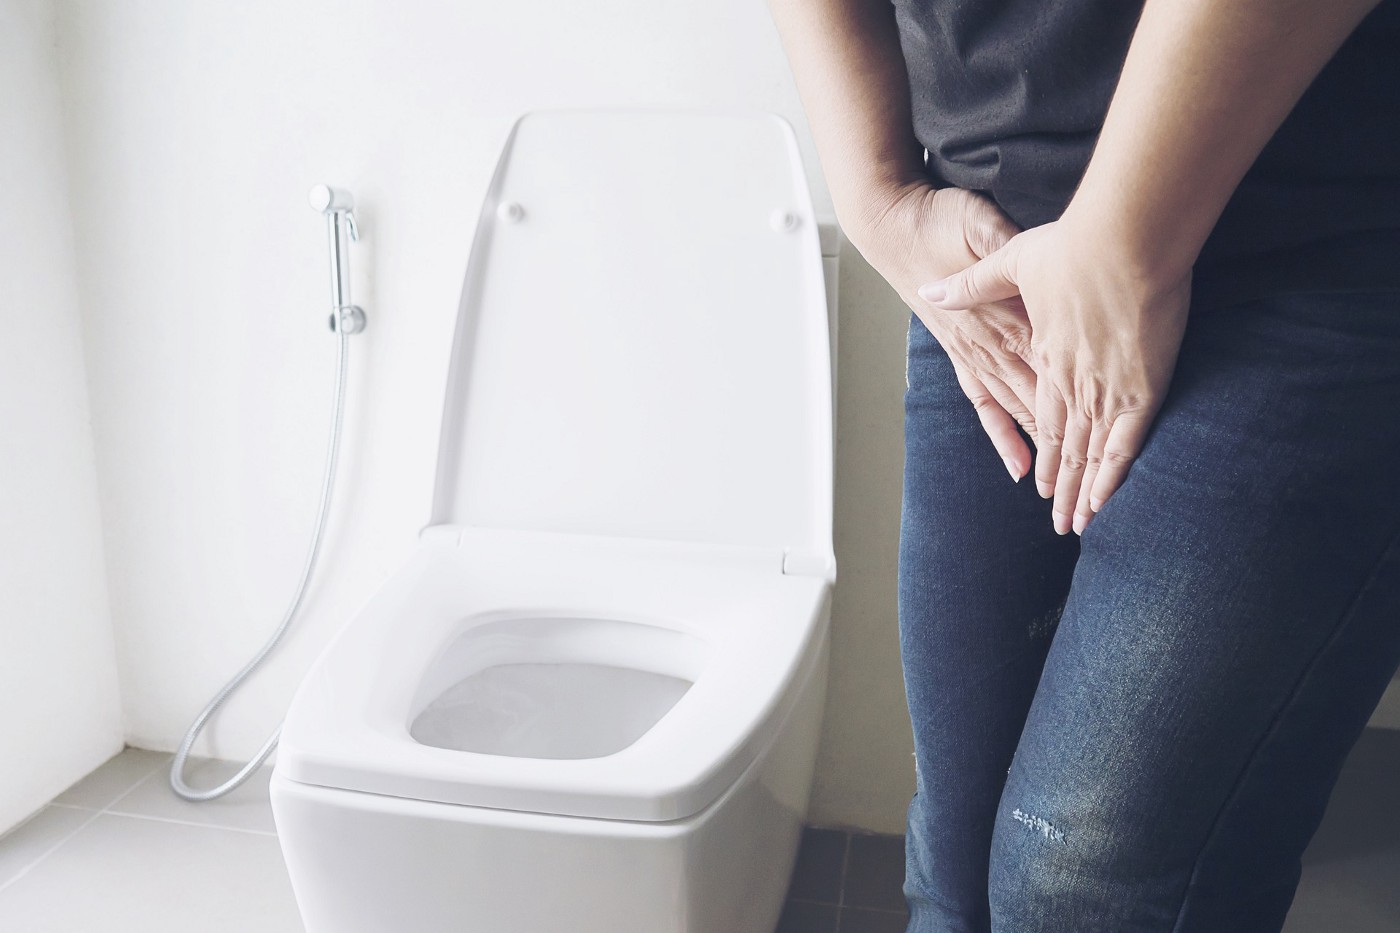 Woman holding her pelvic area by a toilet.